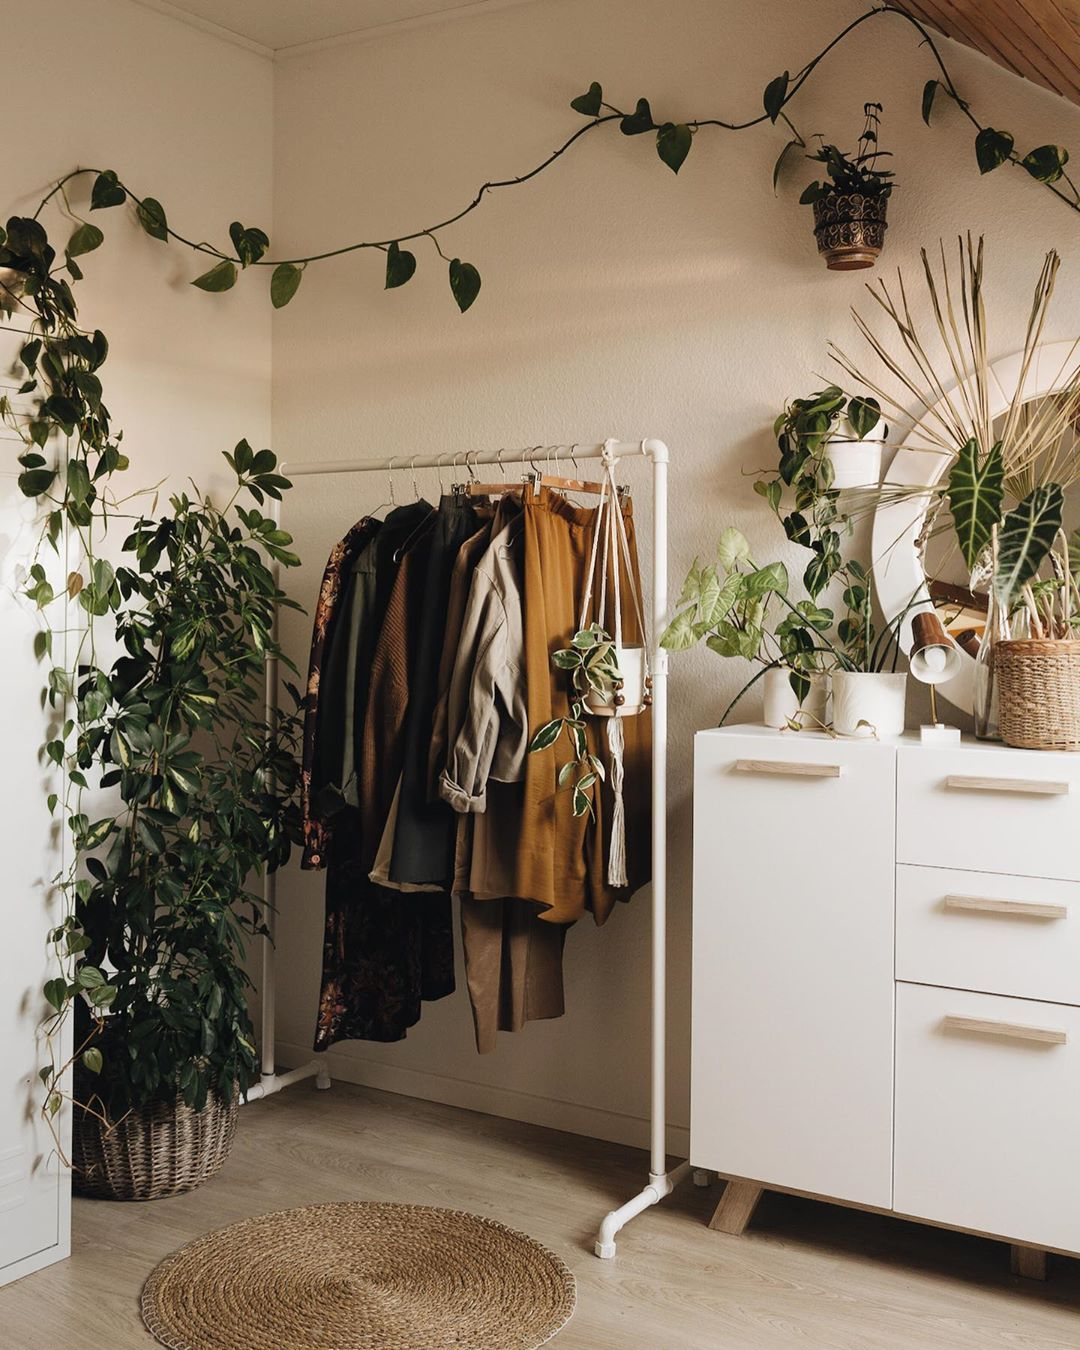 Photo of 16 Minimalist Home Organization & Decluttering Tips